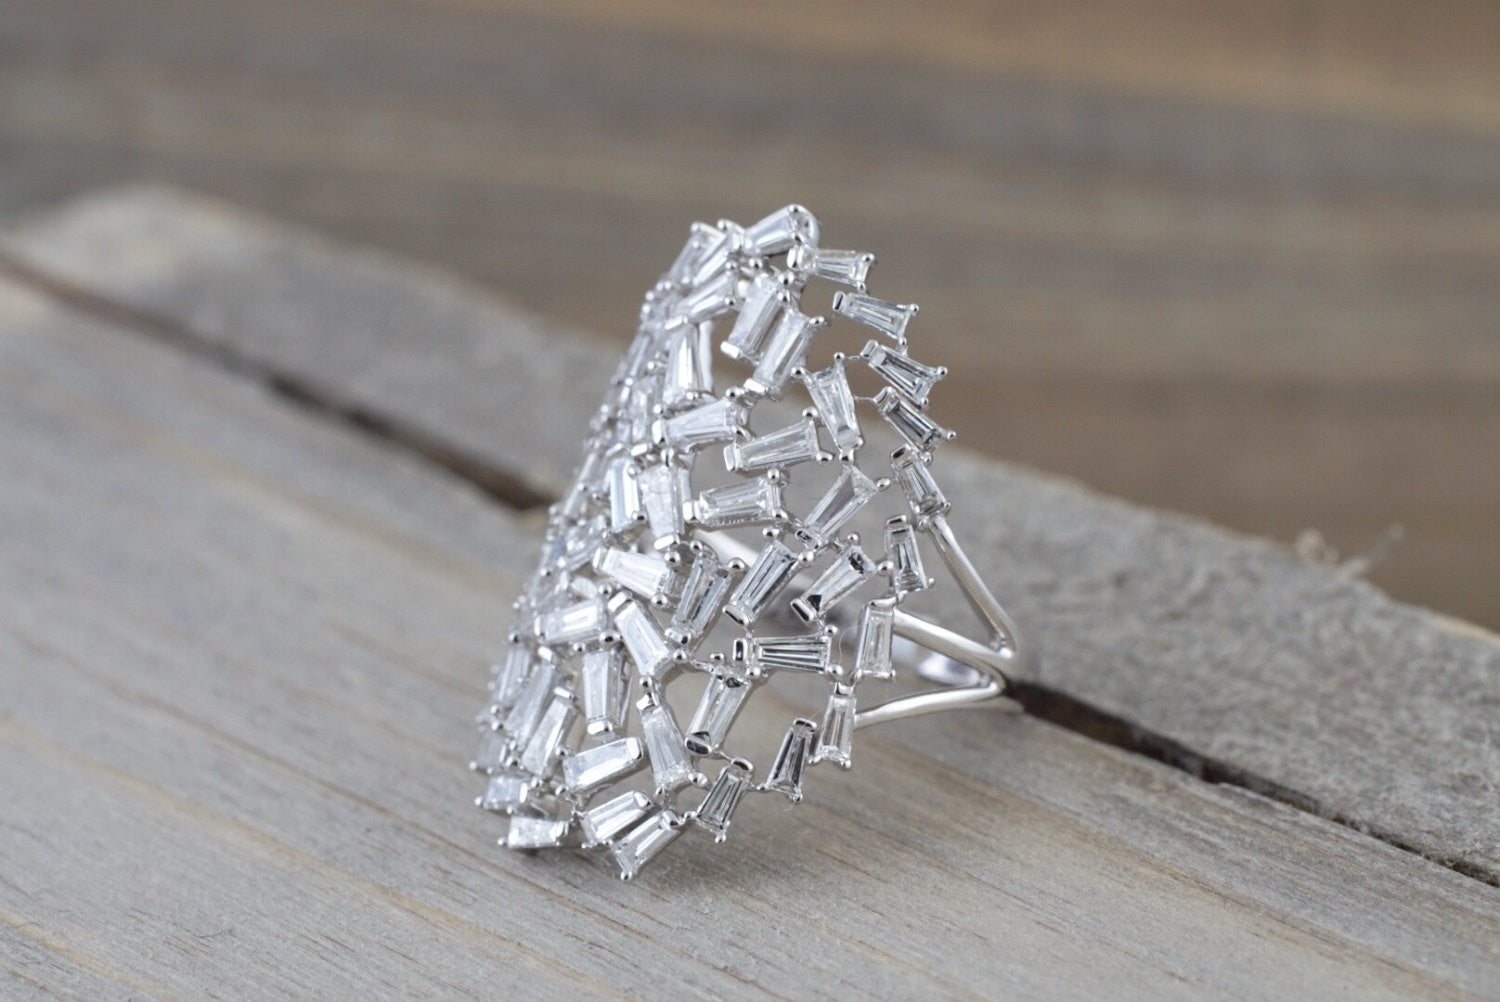 18kt White Gold Baguette Diamond Fancy Art Deco Design Pattern Ring Vintage Inspired